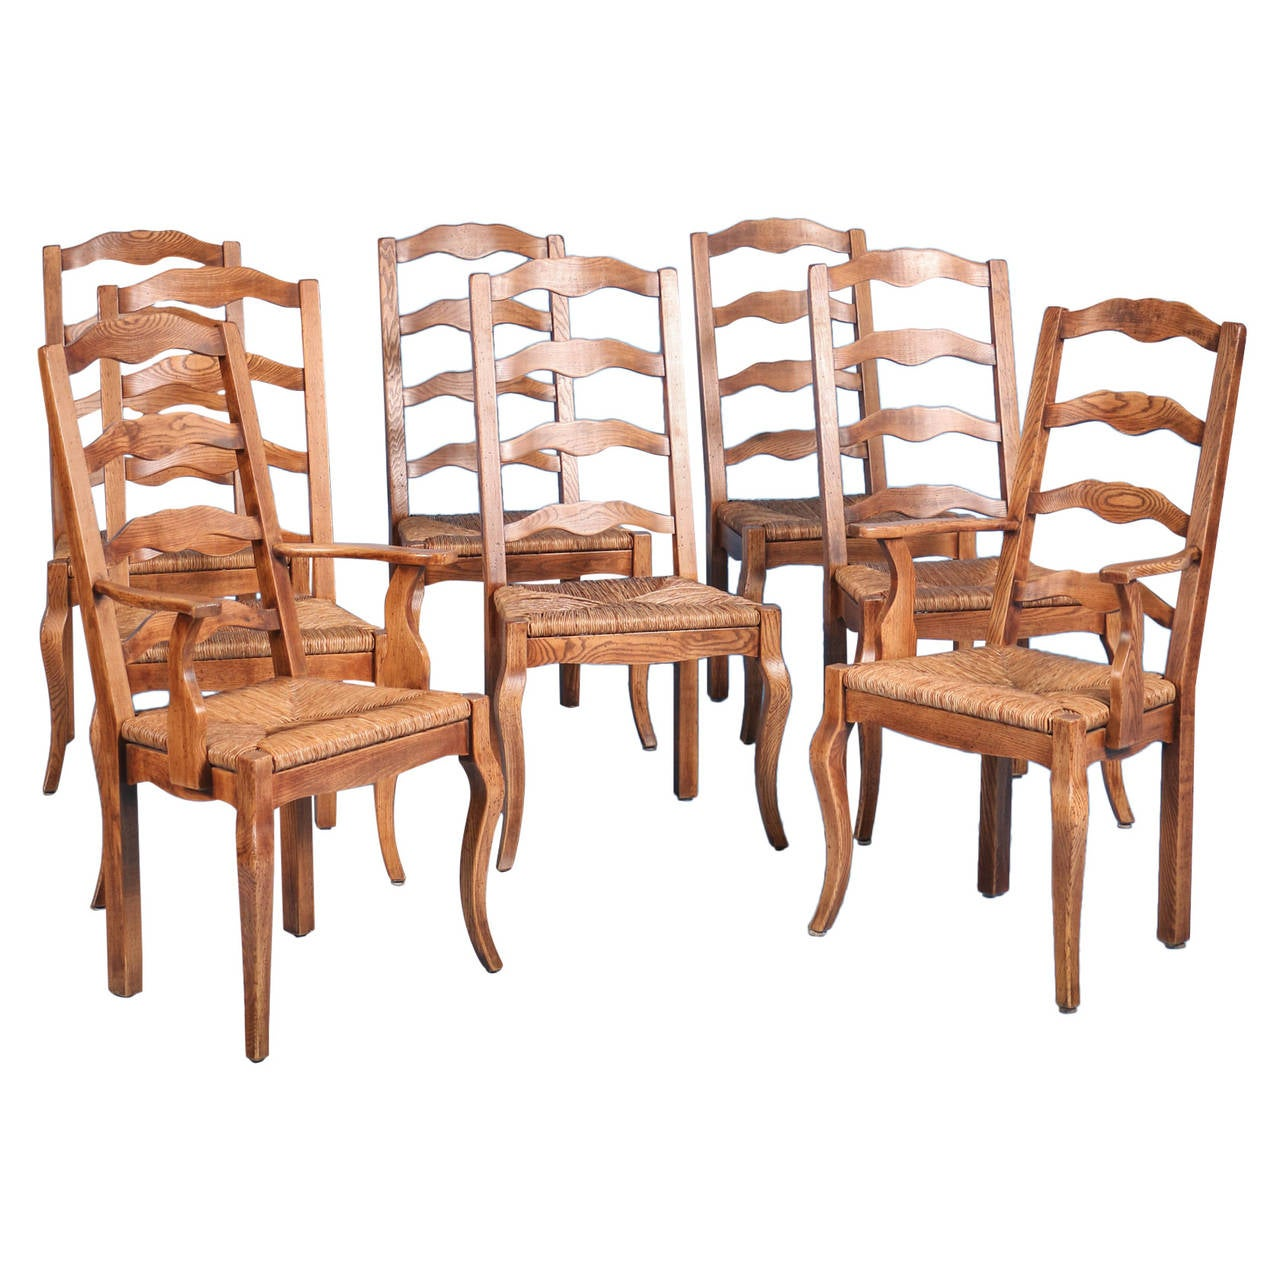 Country Dining Chairs French Country Elm Wood And Rush Seat Dining Chairs Set